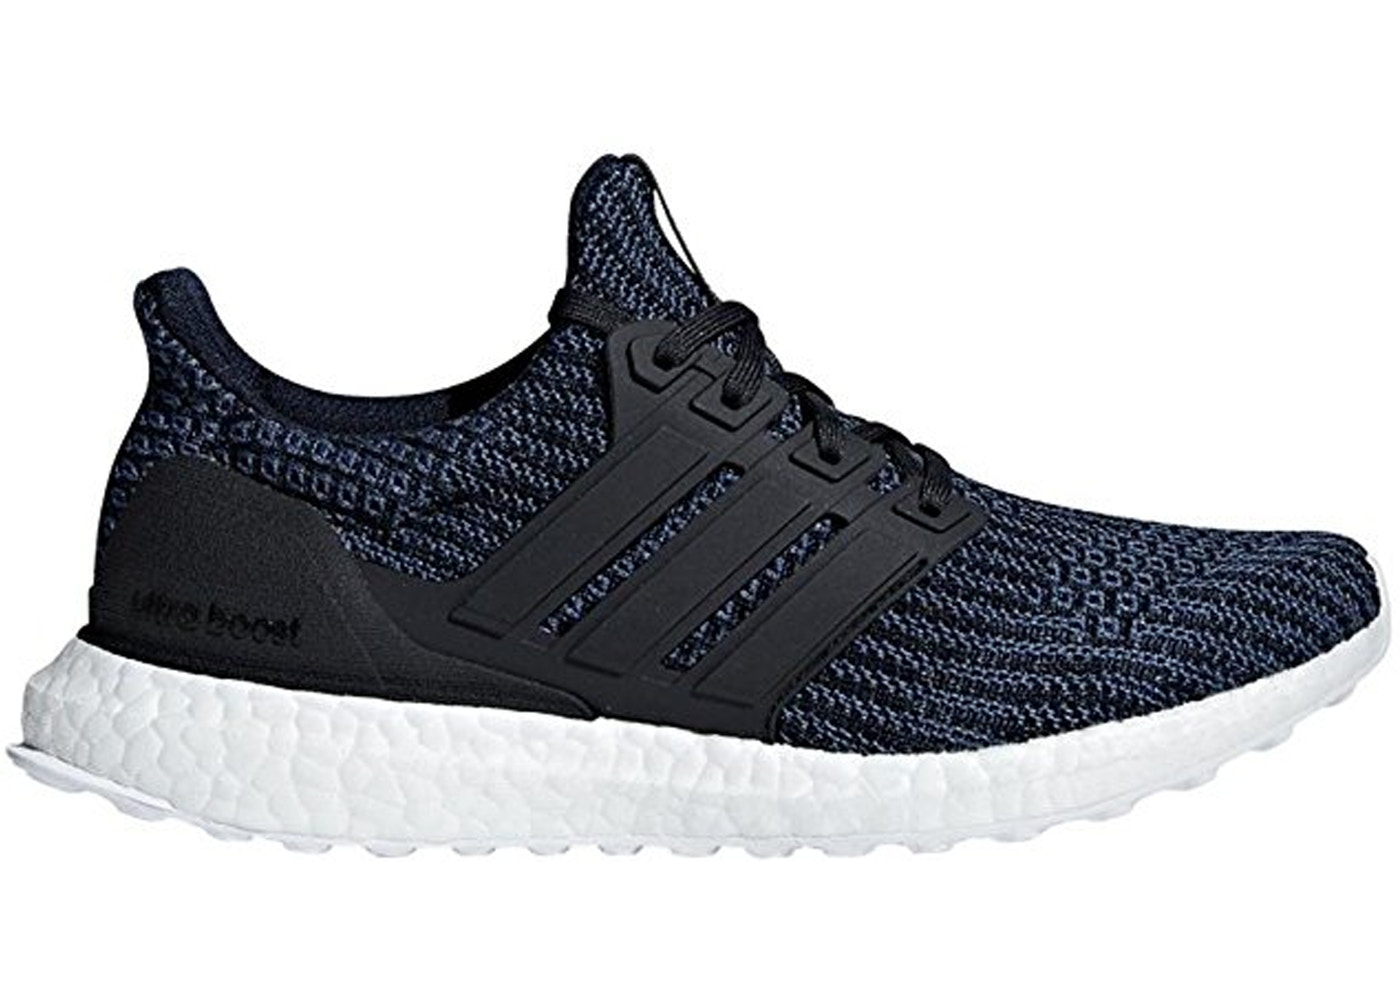 Detailed Look at the adidas Ultra Boost 4.0